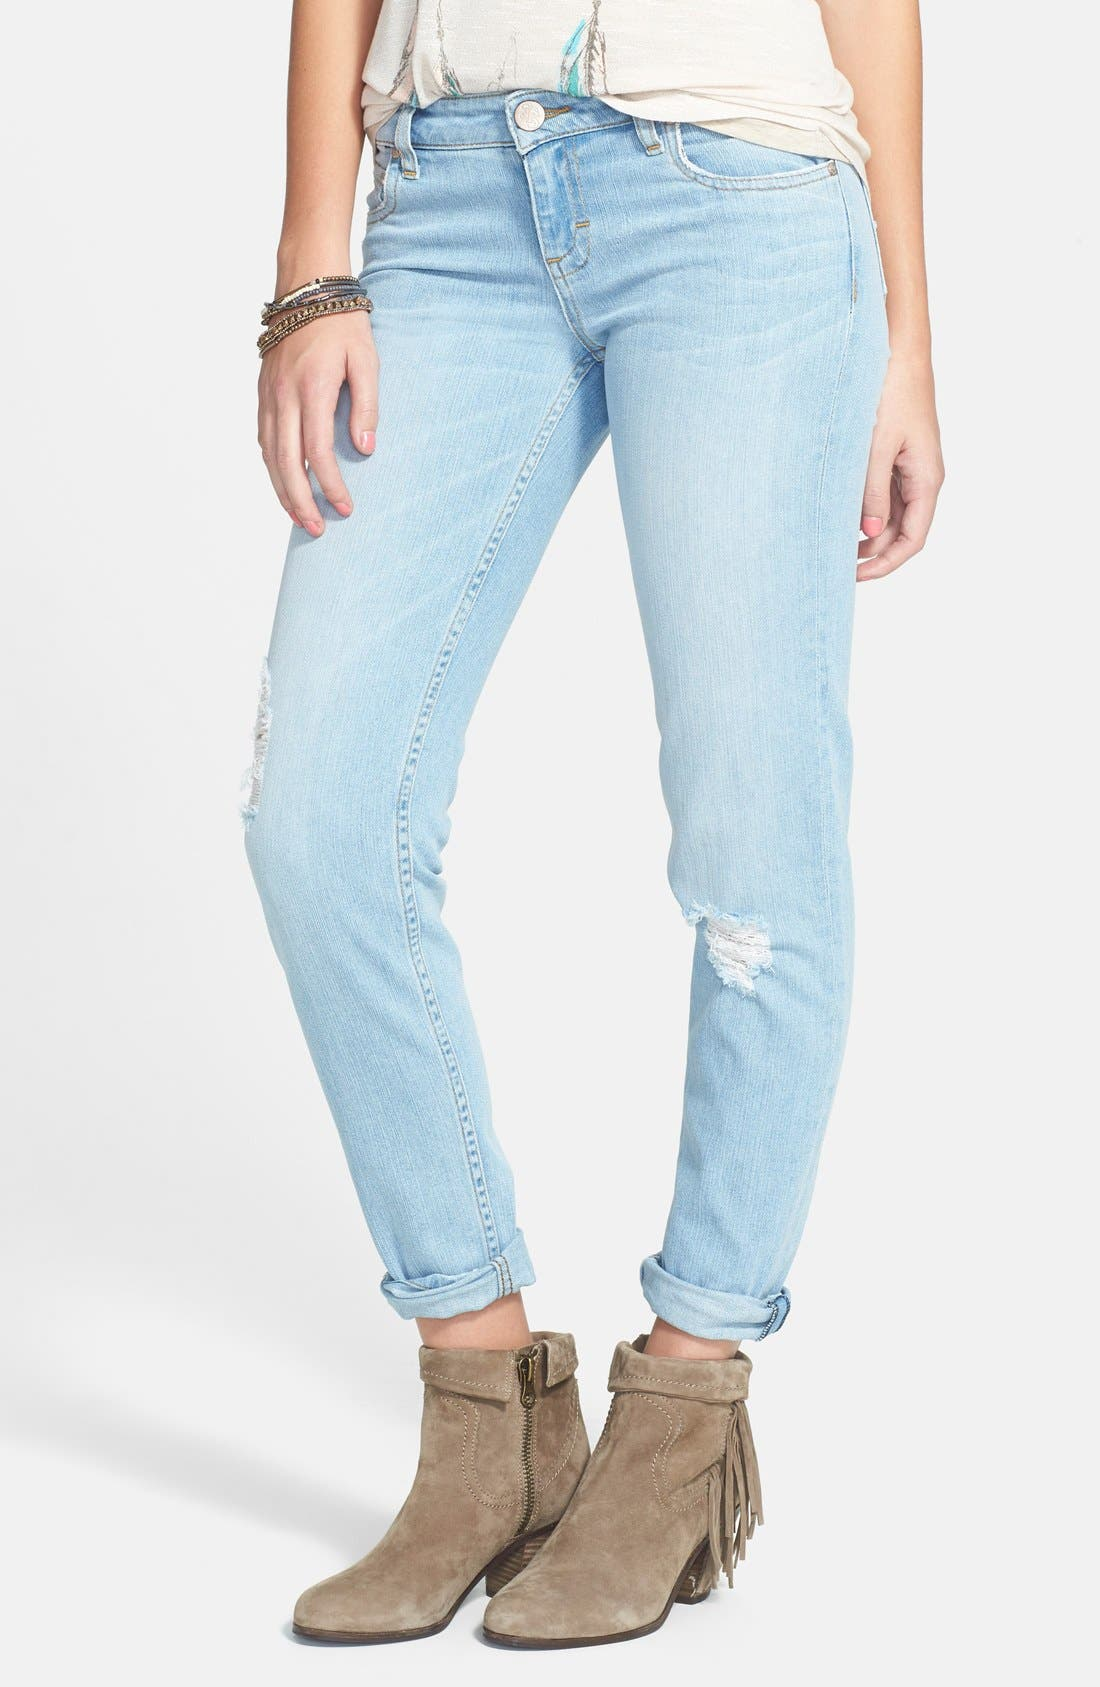 Alternate Image 1 Selected - STS Blue 'Joey' Boyfriend Jeans (Light Wash)